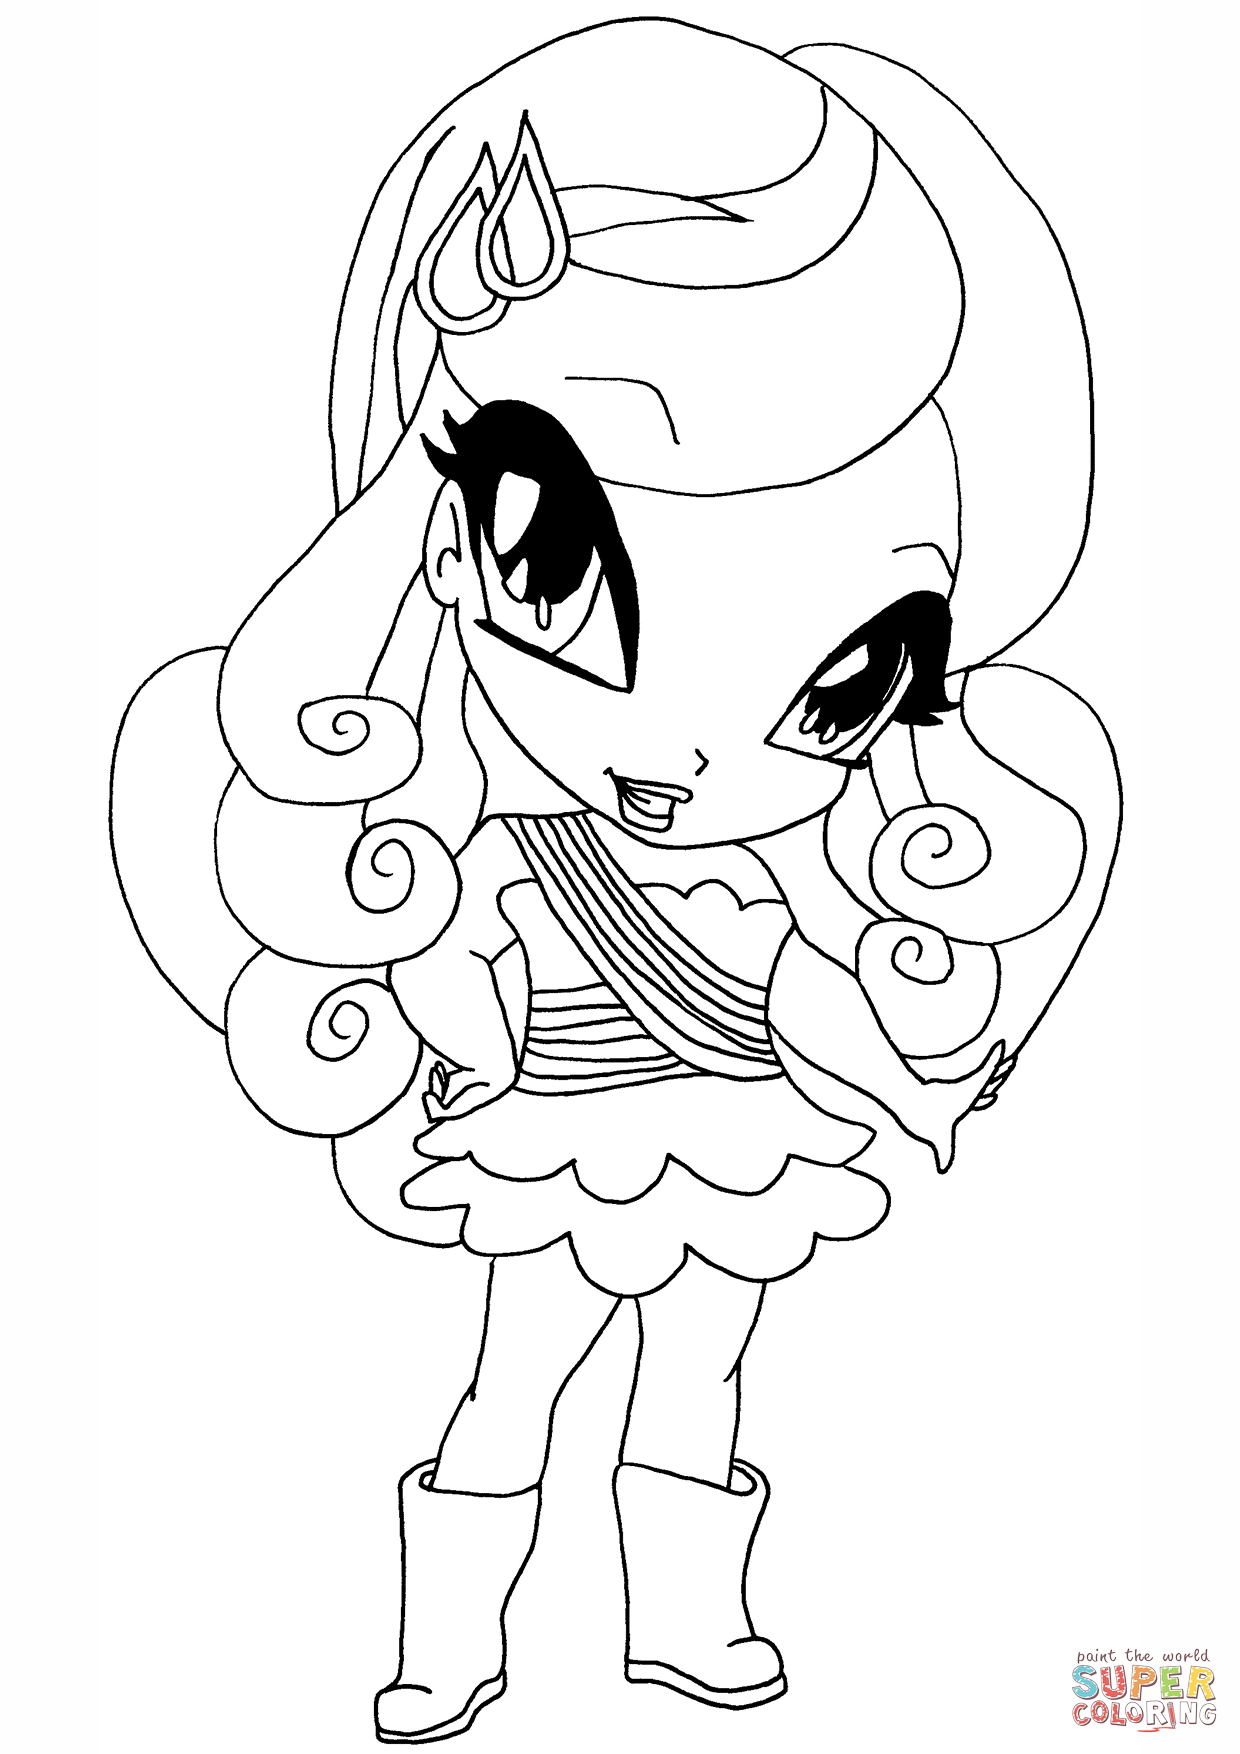 Winx Club Cherie Pixie Coloring Page Free Printable Coloring Pages